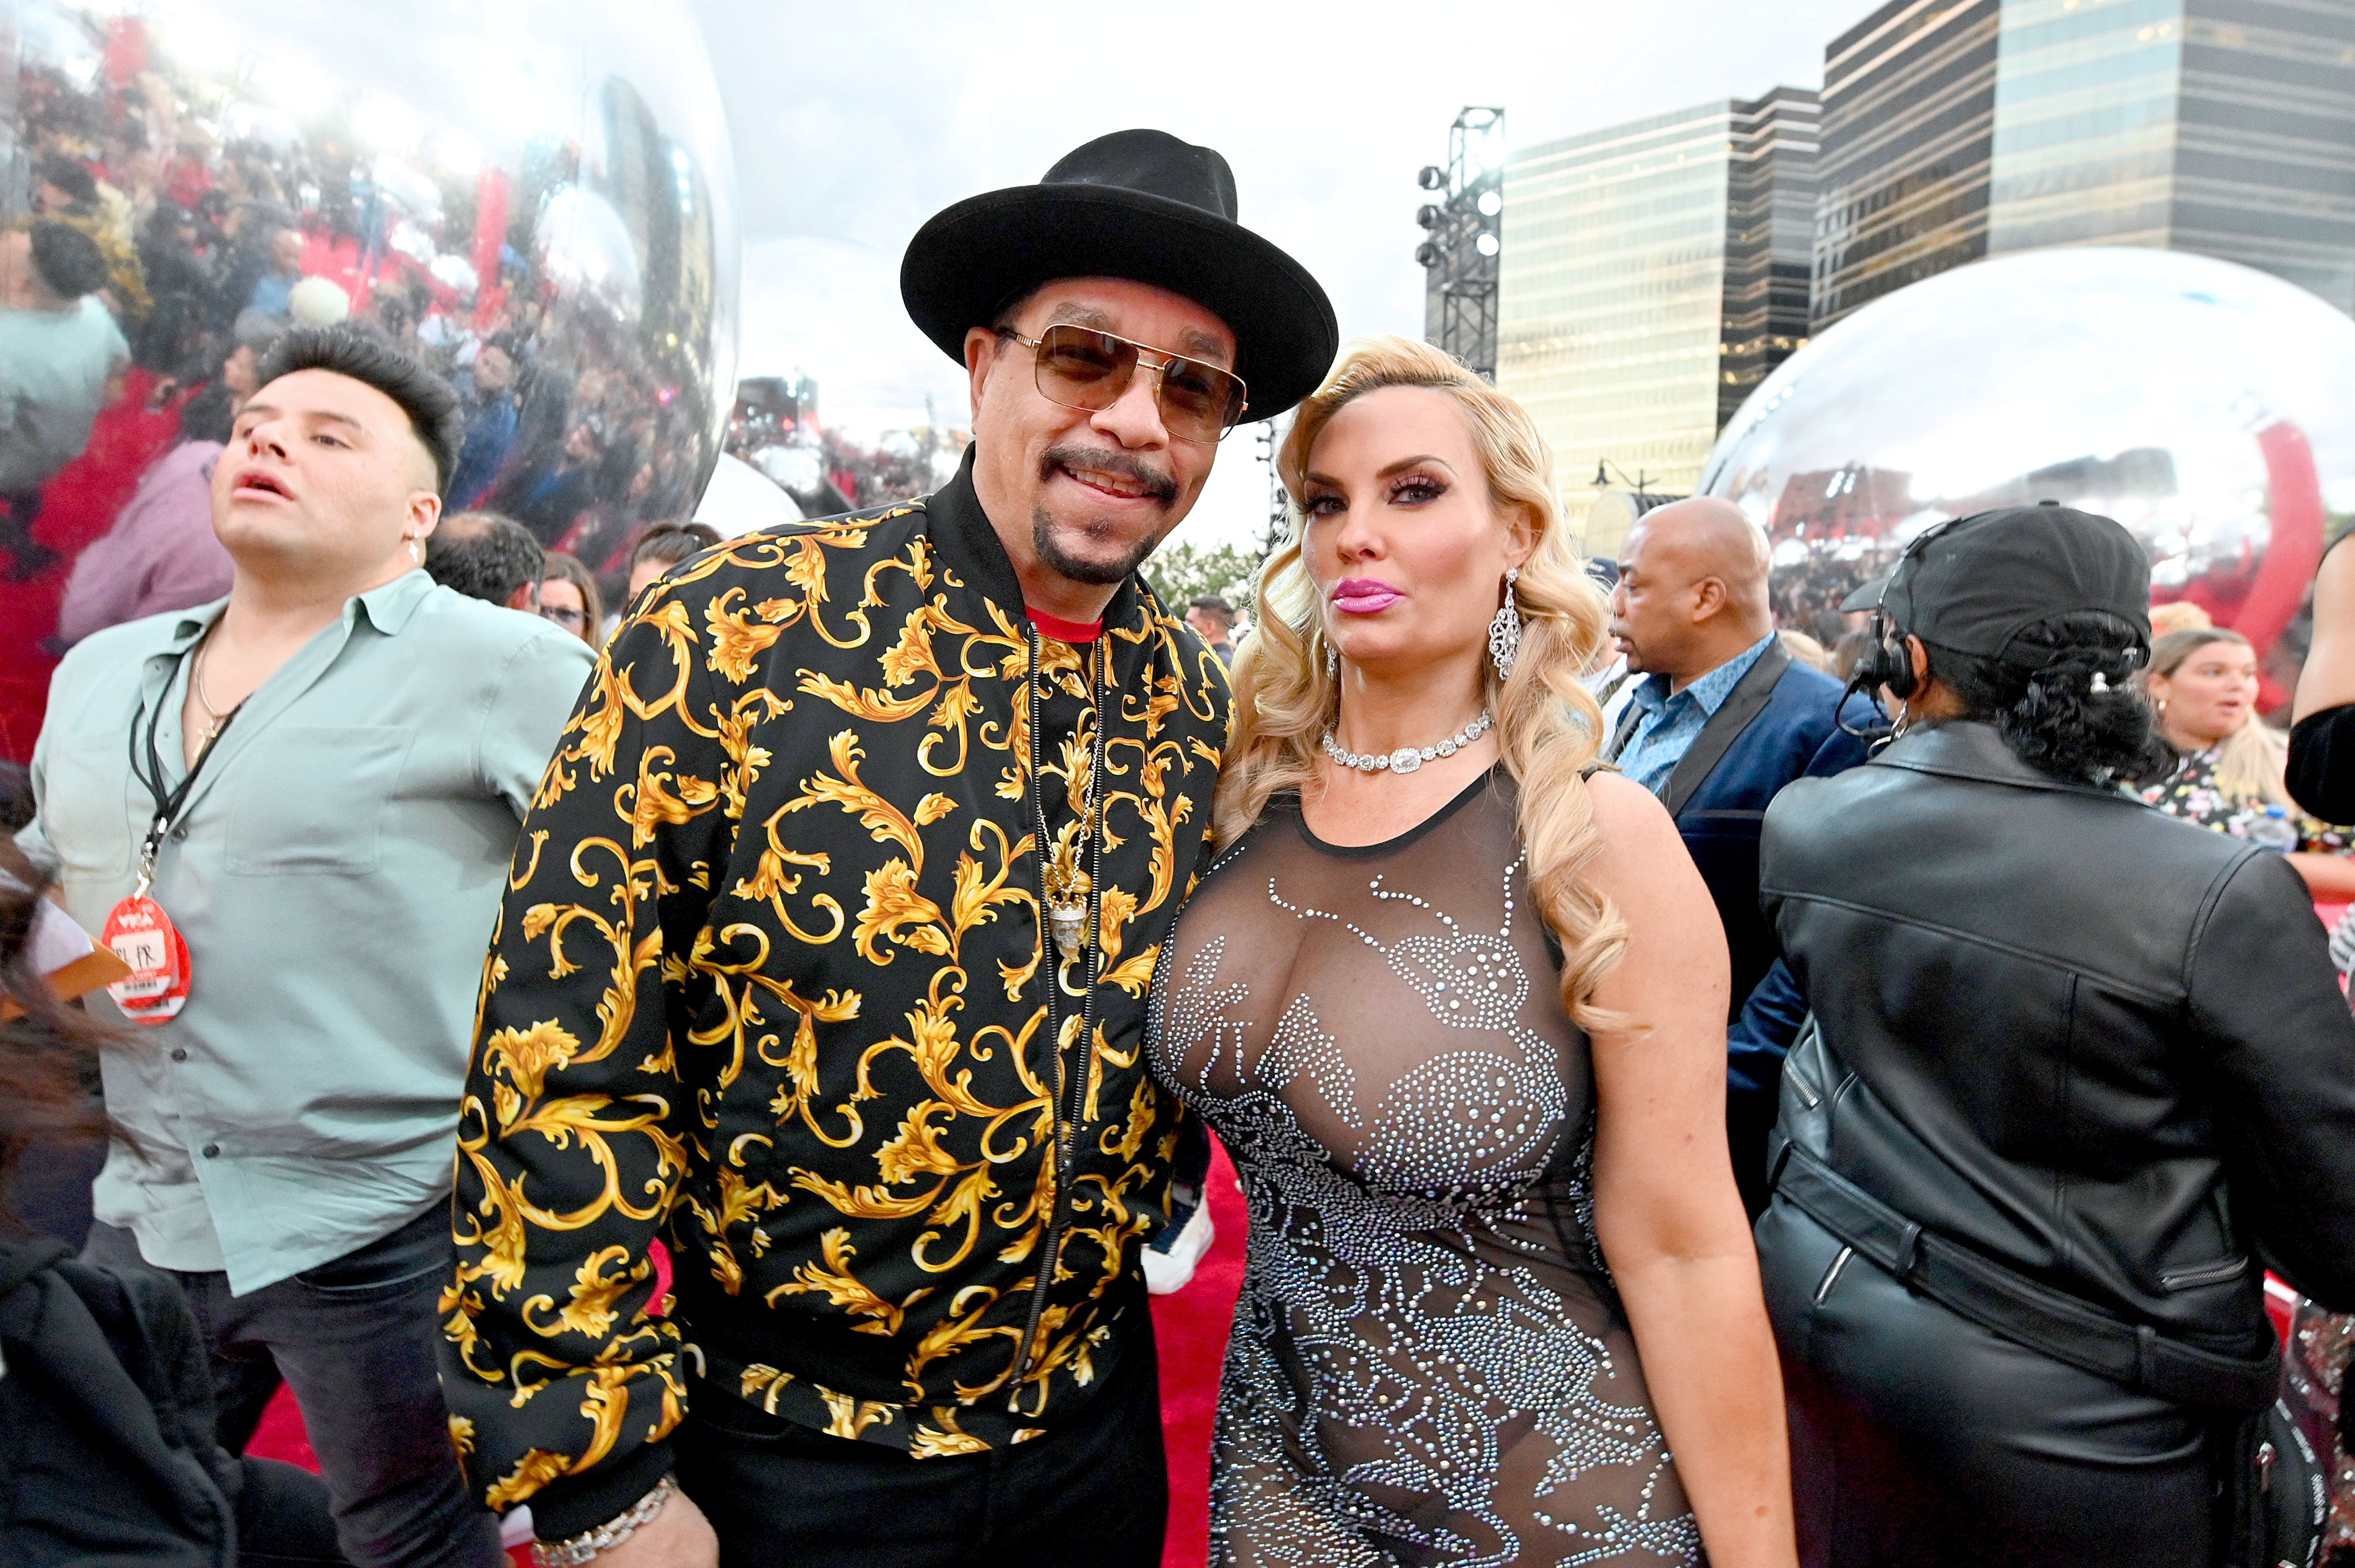 Ice-T and Coco Austin at the MTV Video Music Awards on August 26, 2019 in Newark. | Photo: Getty Images